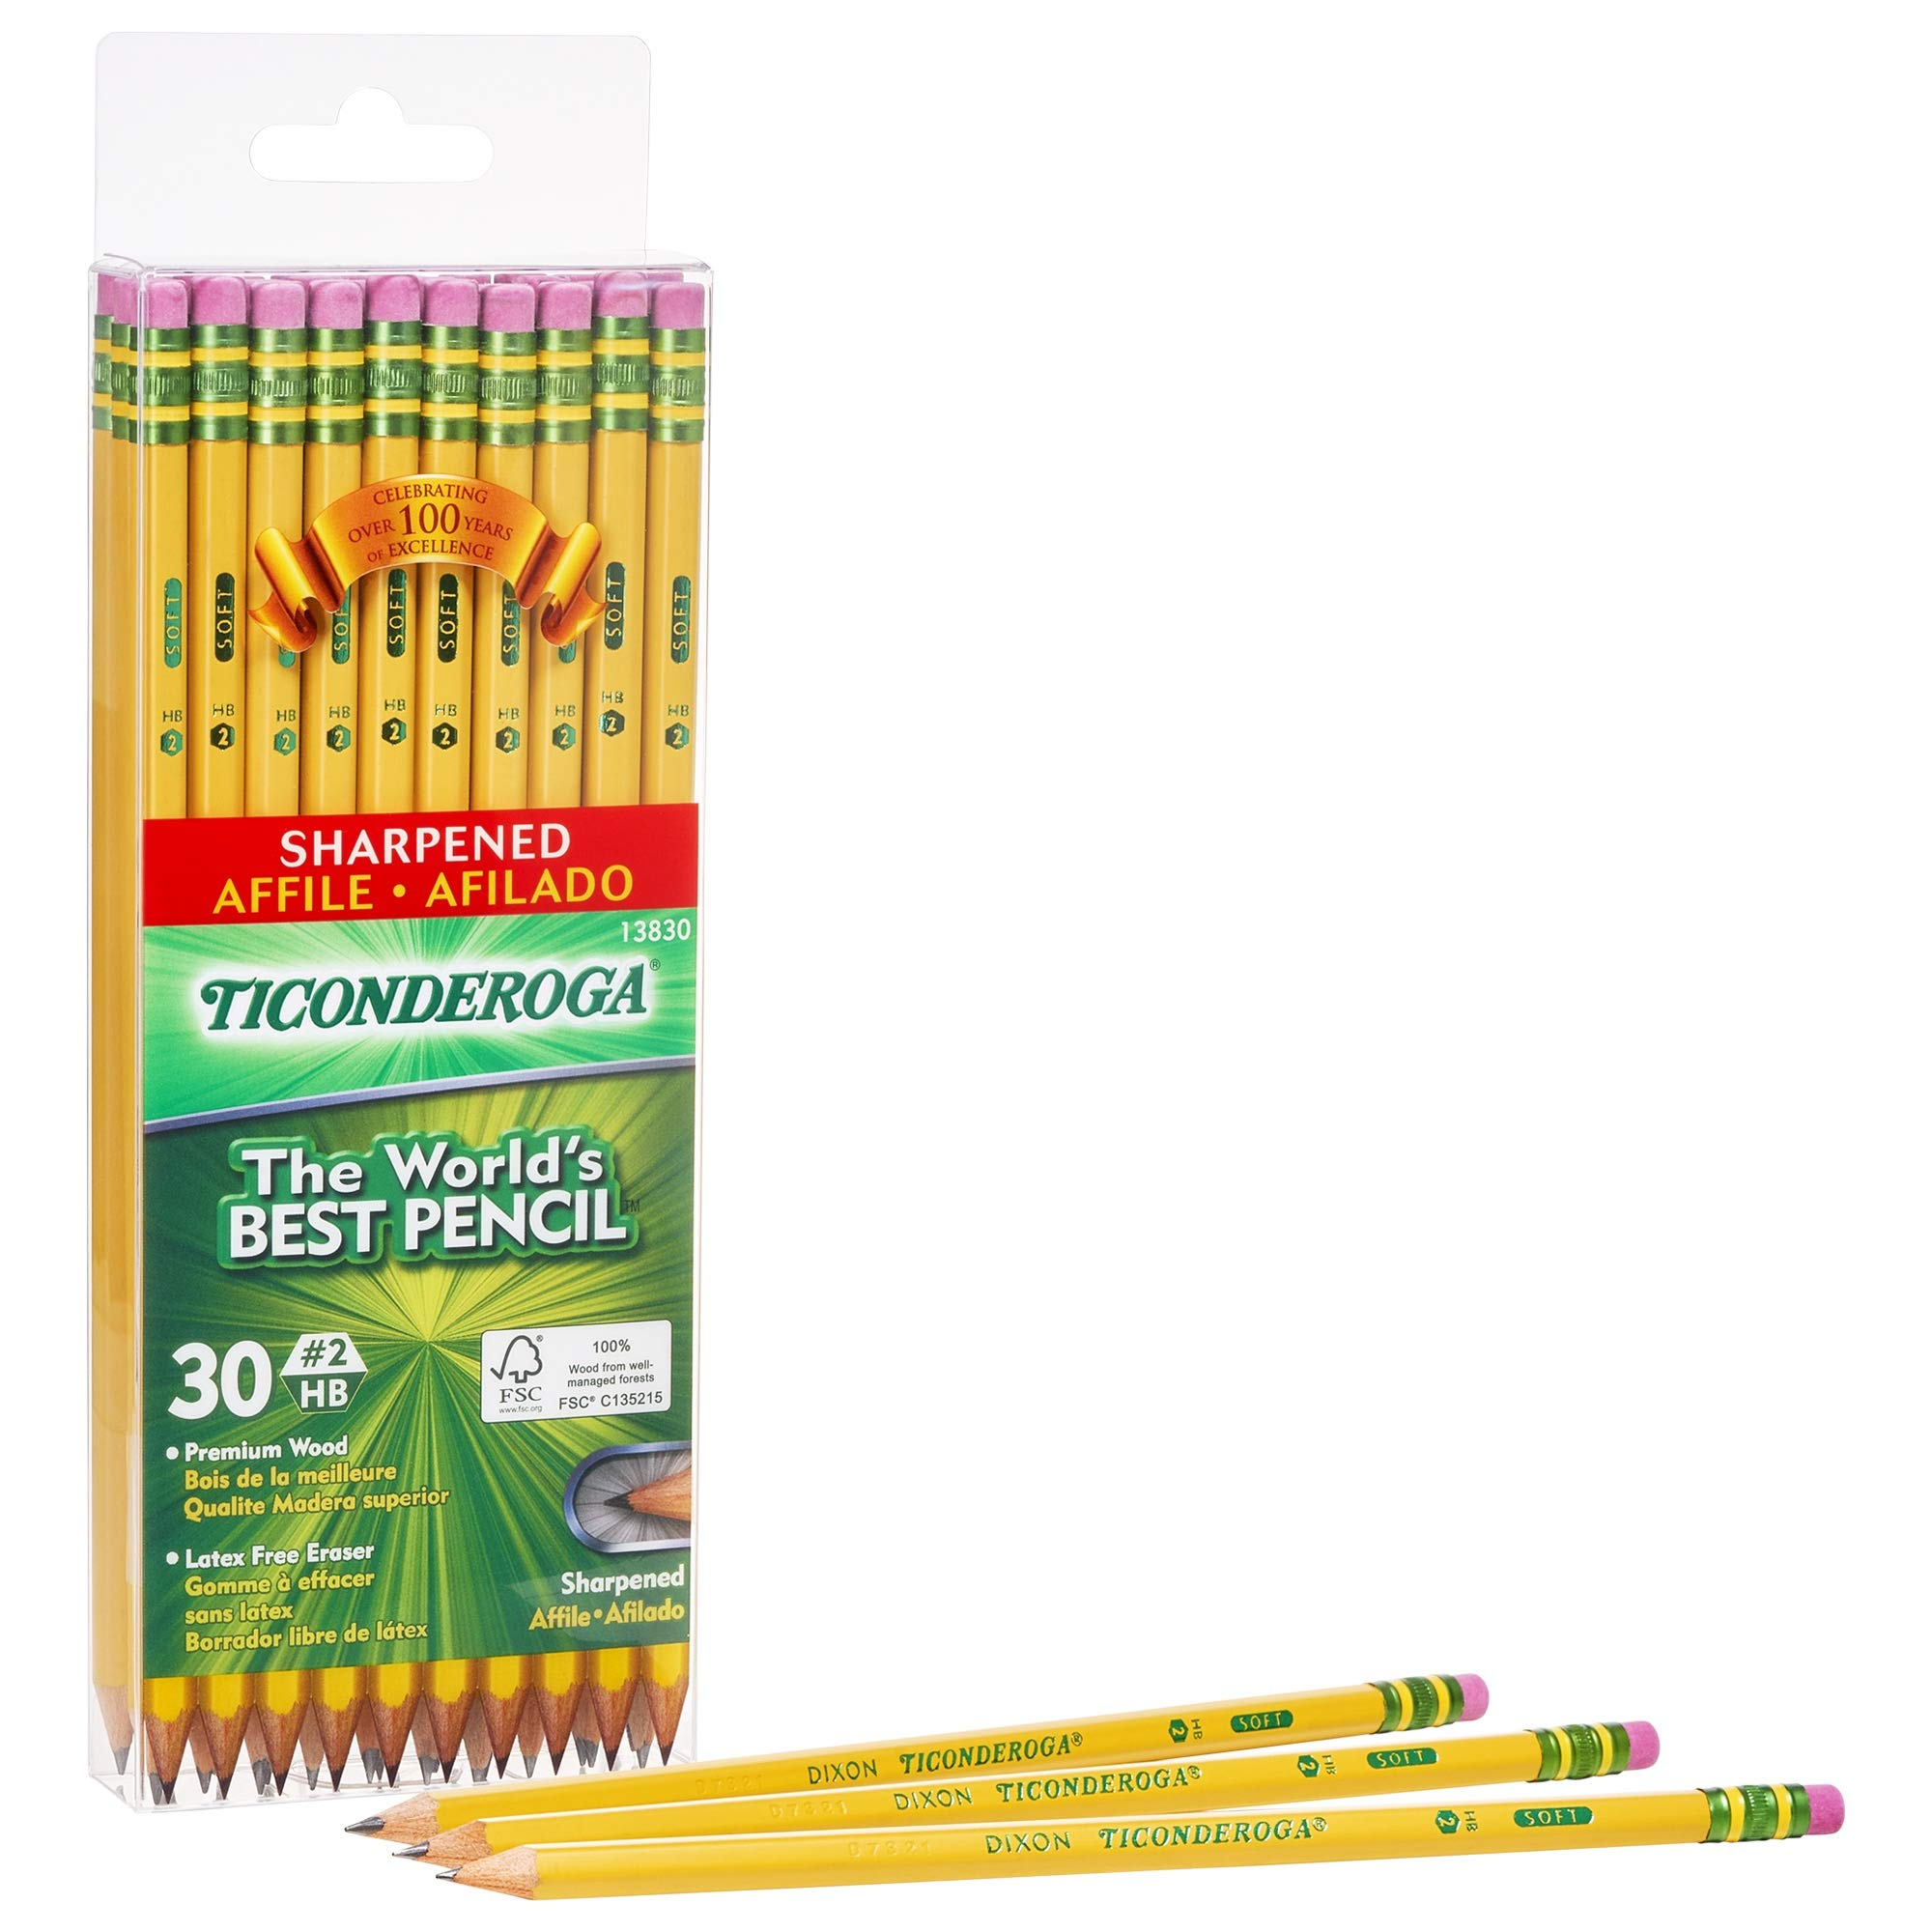 TICONDEROGA Pencils, Wood-Cased #2 HB Soft, Pre-Sharpened with Eraser, Yellow, 6-Pack/ 180 count (13806) by Ticonderoga (Image #1)